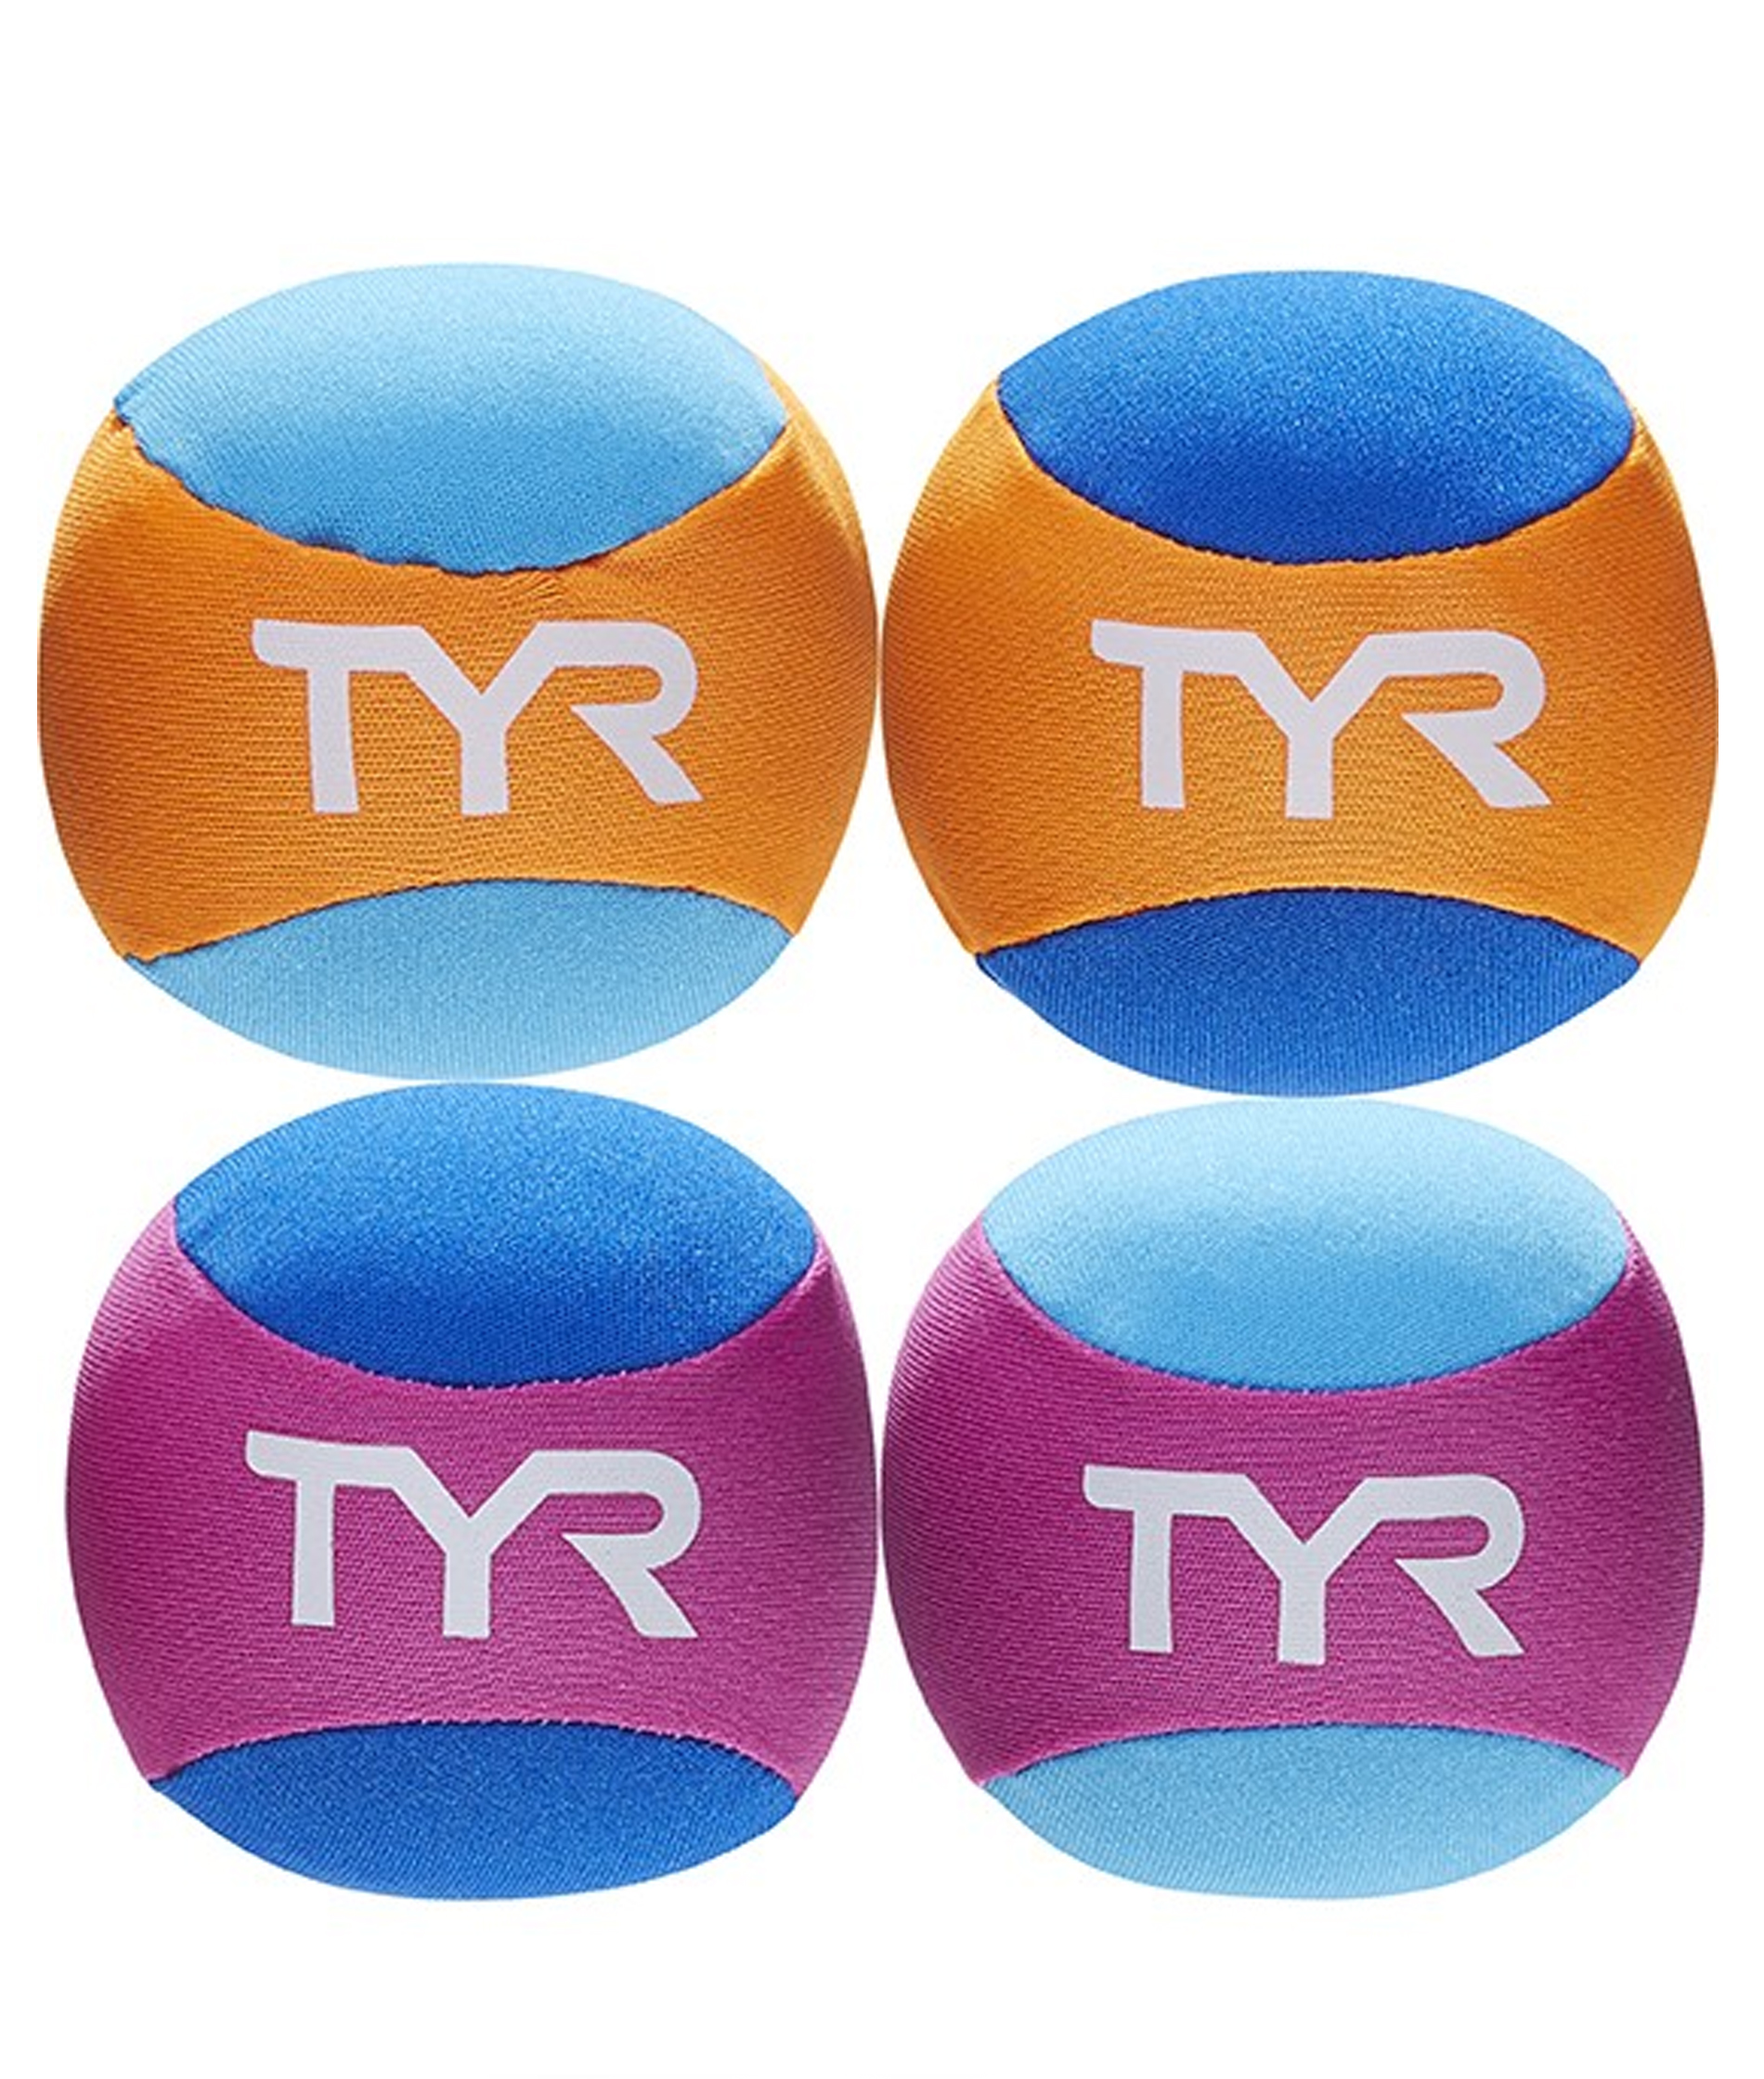 TYR Kids' Start to Swim Pool Balls